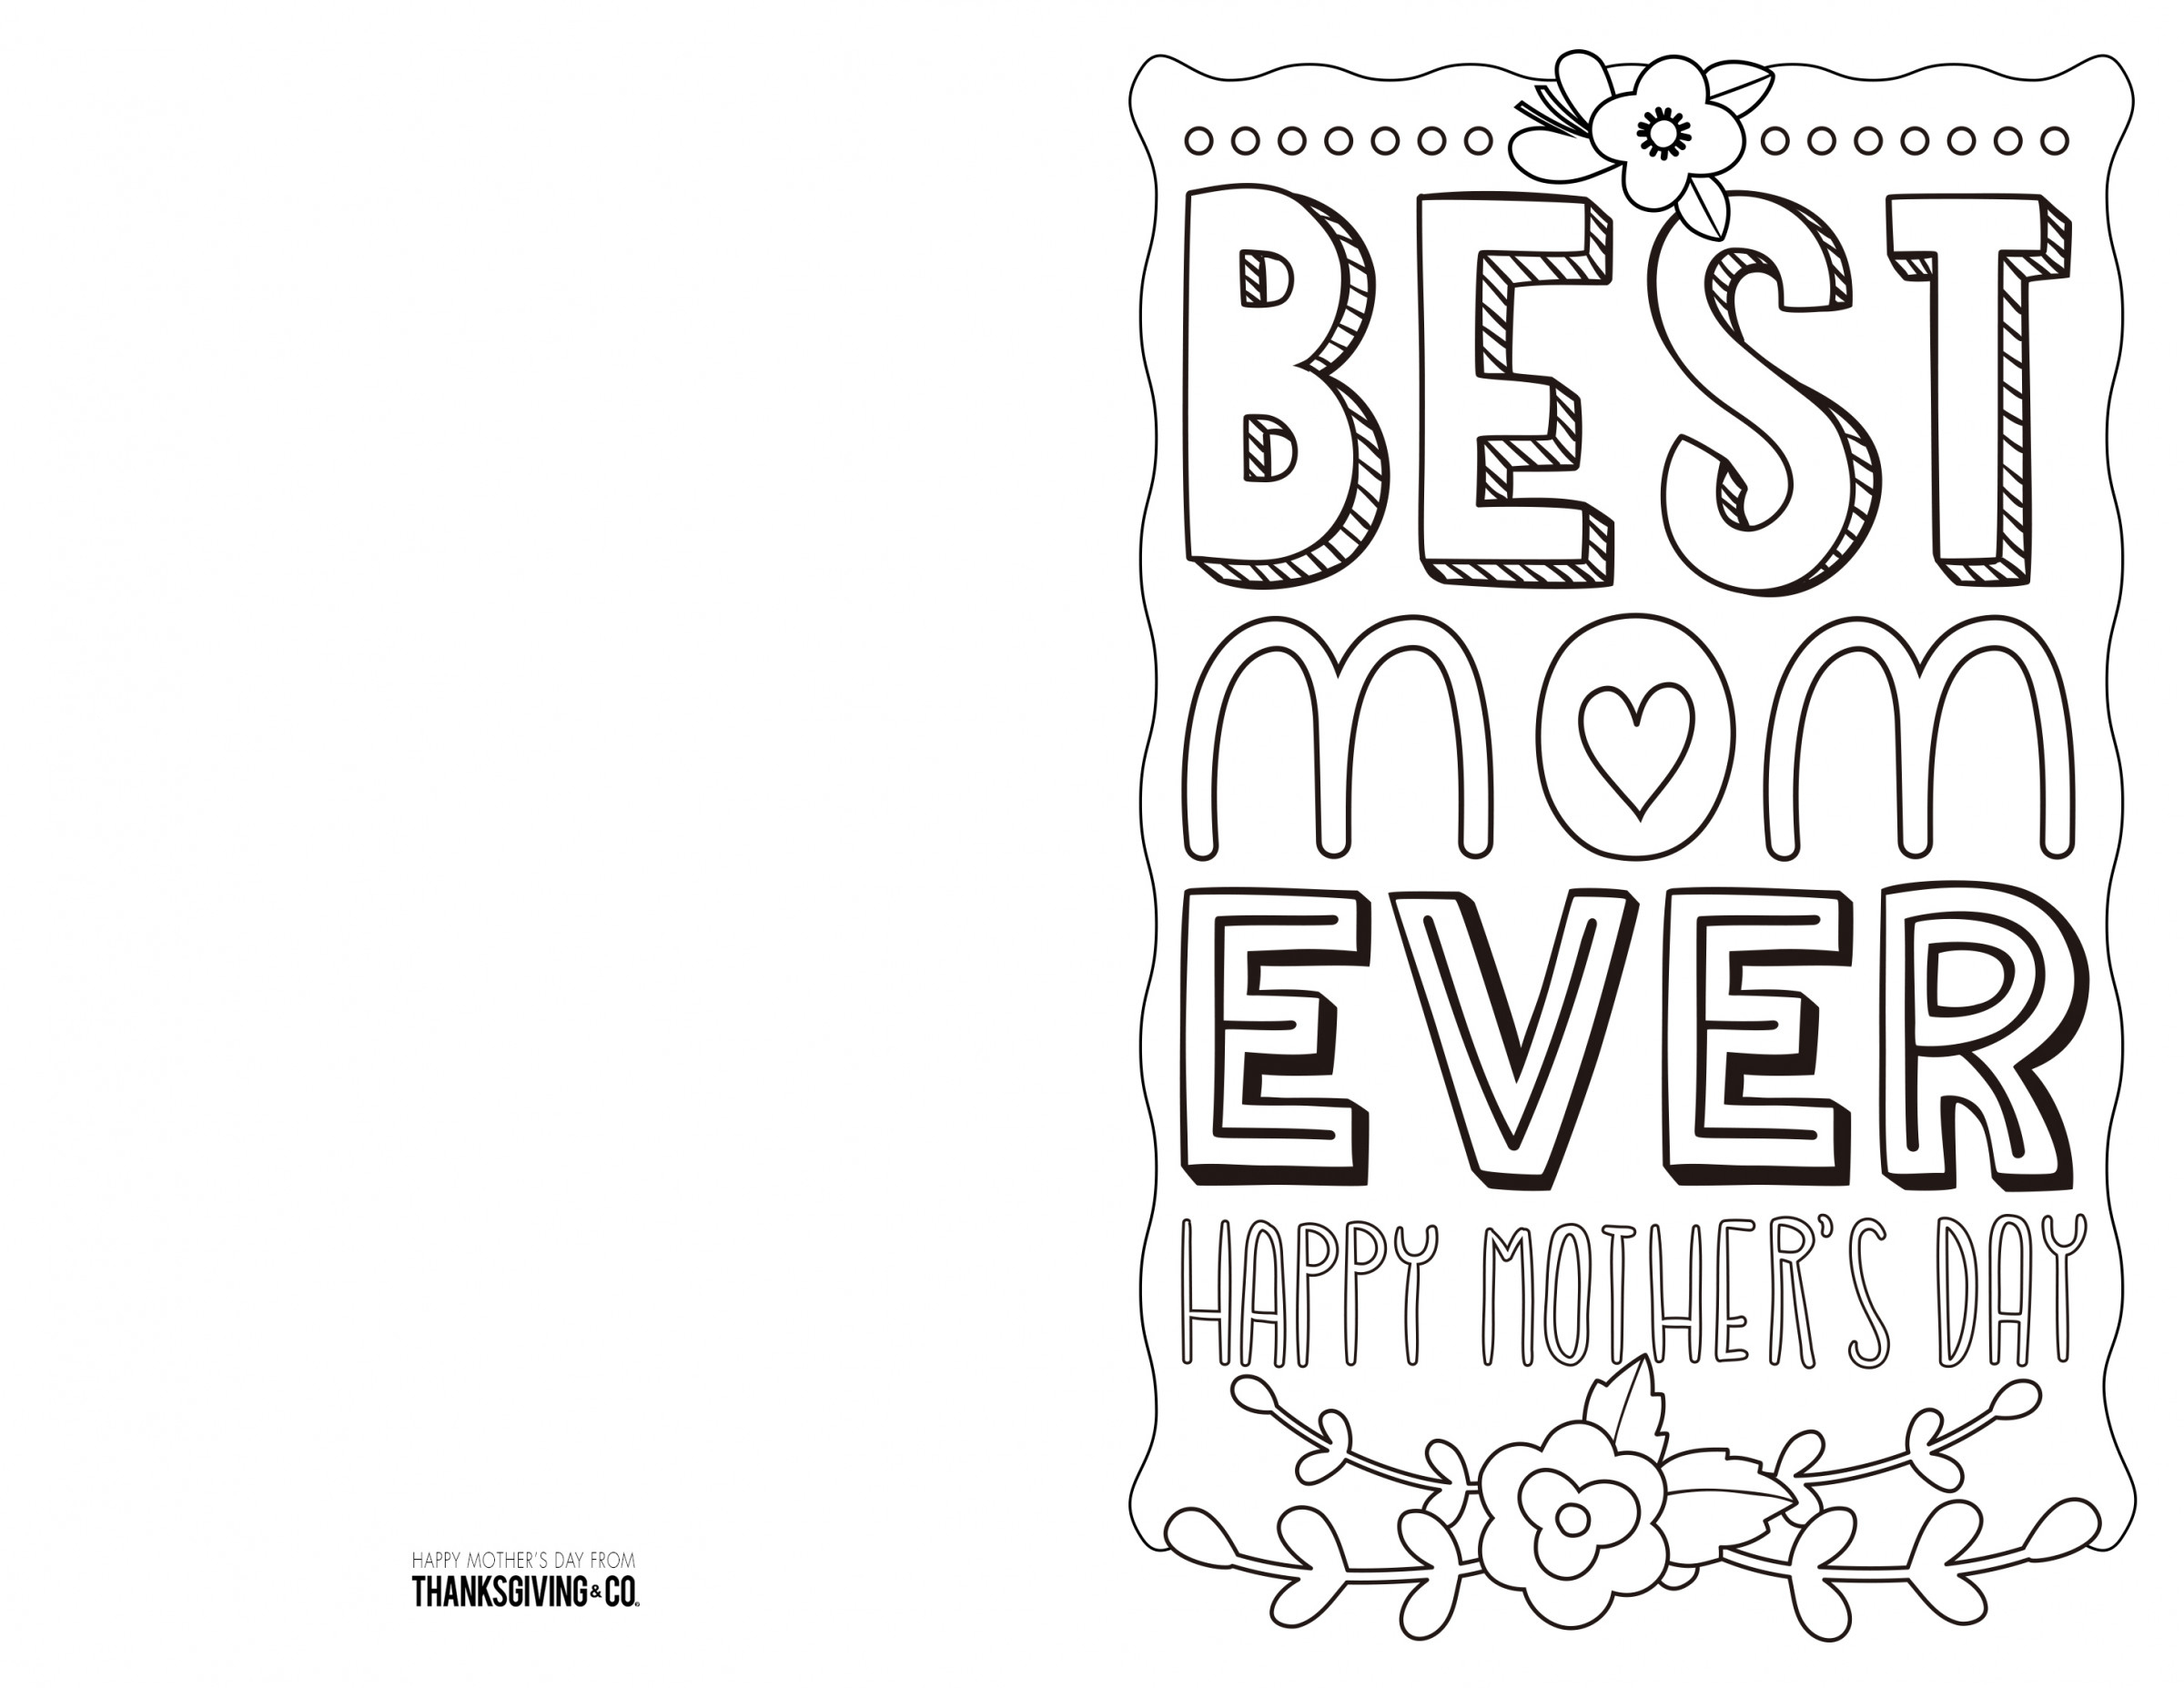 4 Free Printable Mother's Day Ecards To Color - Thanksgiving - Free Printable Mothers Day Cards